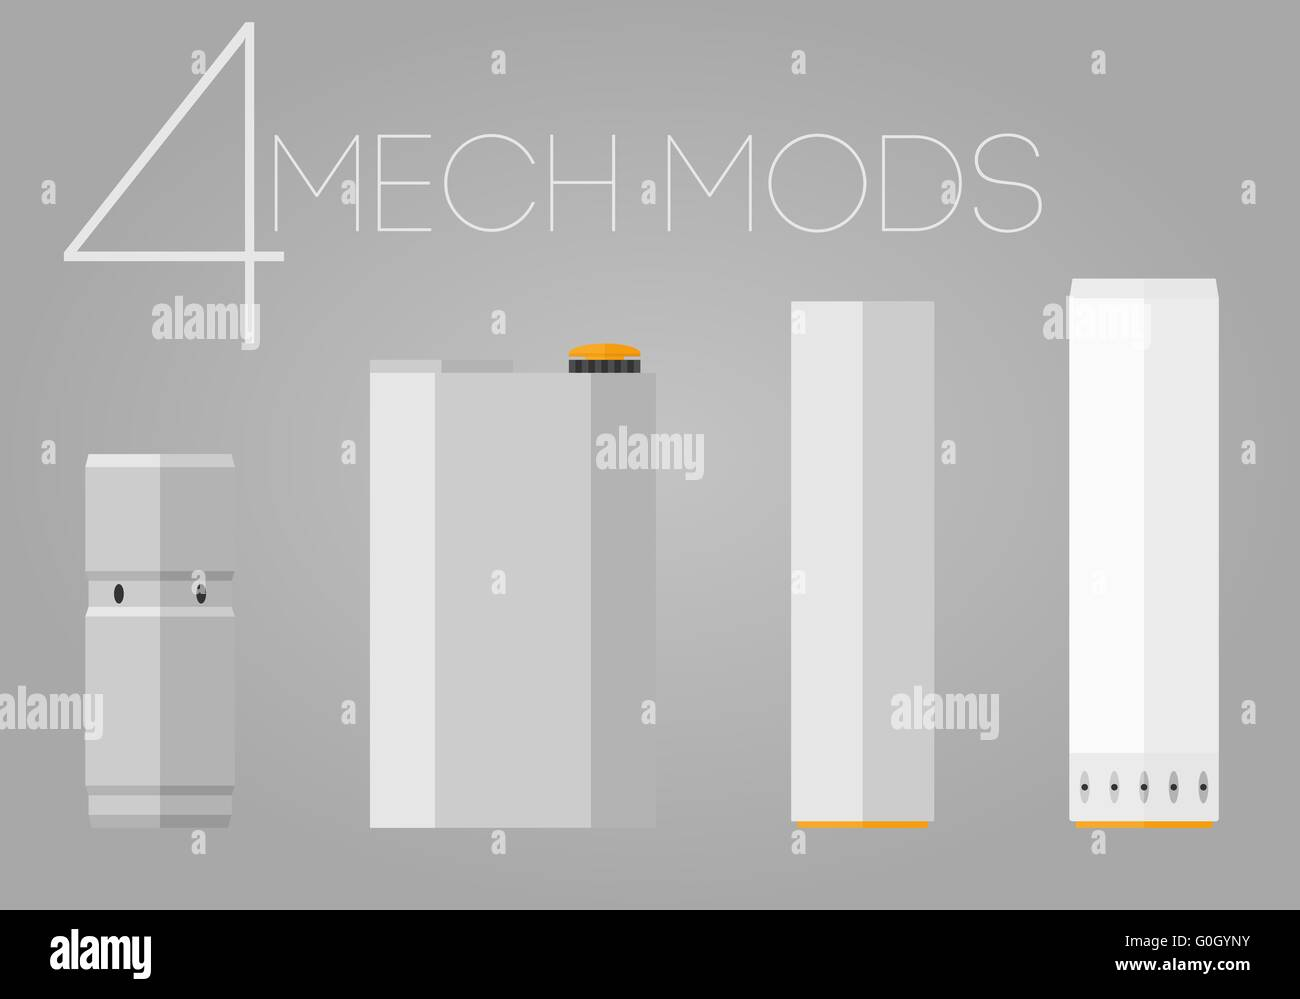 4 colored mechanical mods icons set - Stock Image